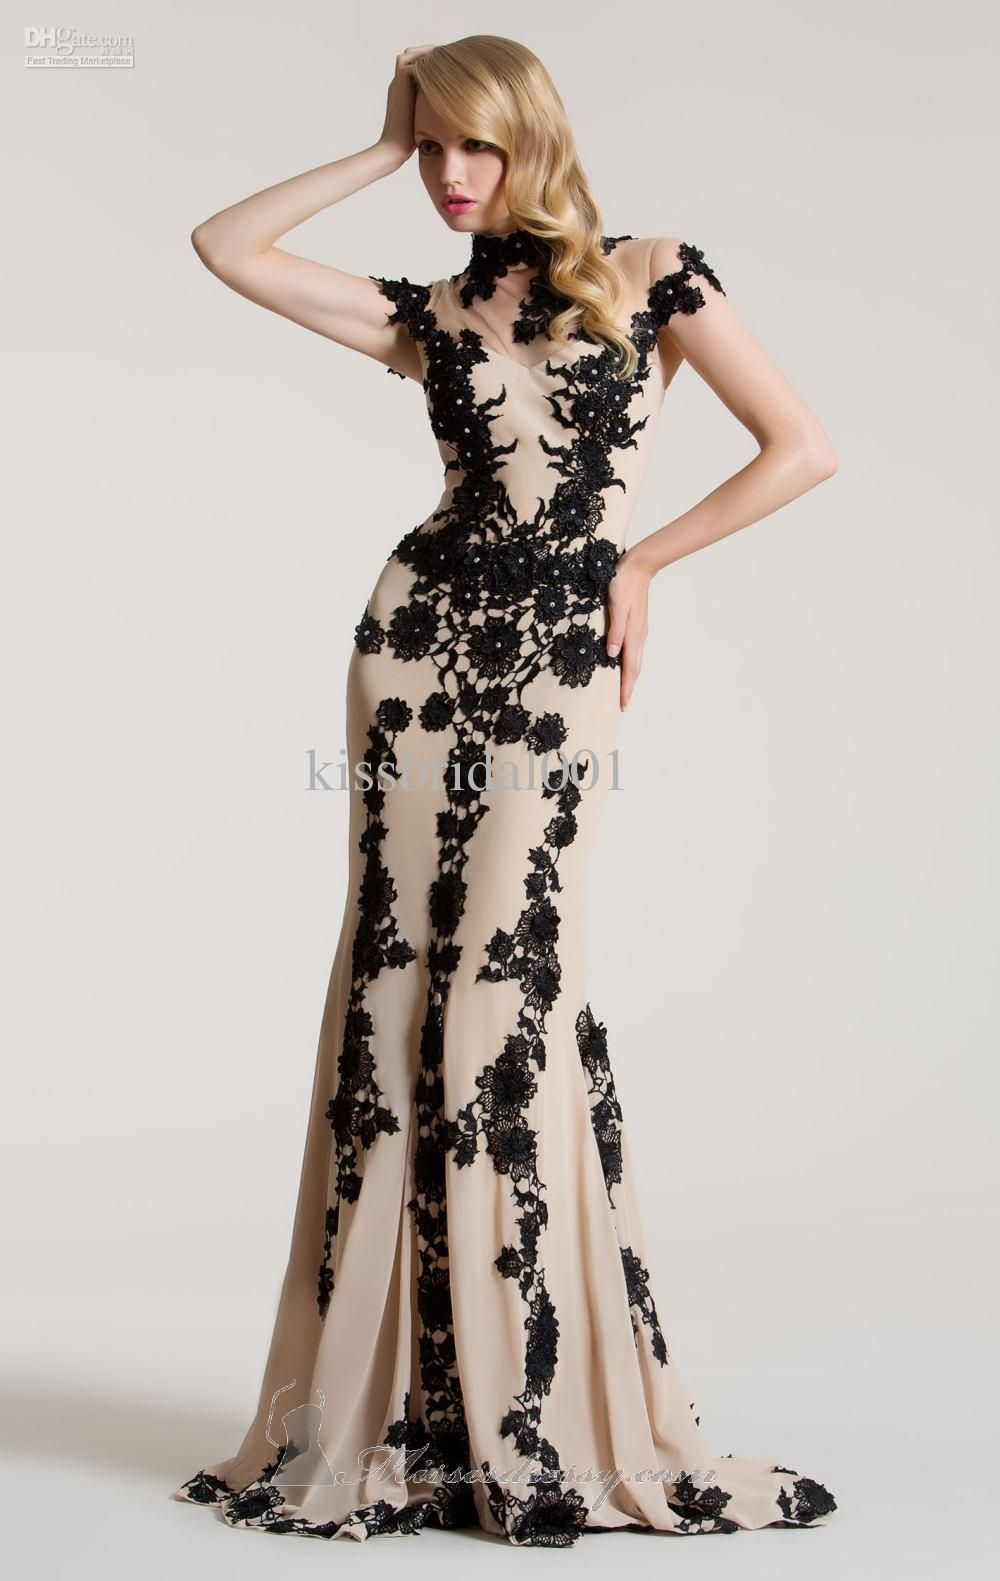 New women mermaid high neck tulle beaded black applique lace nude